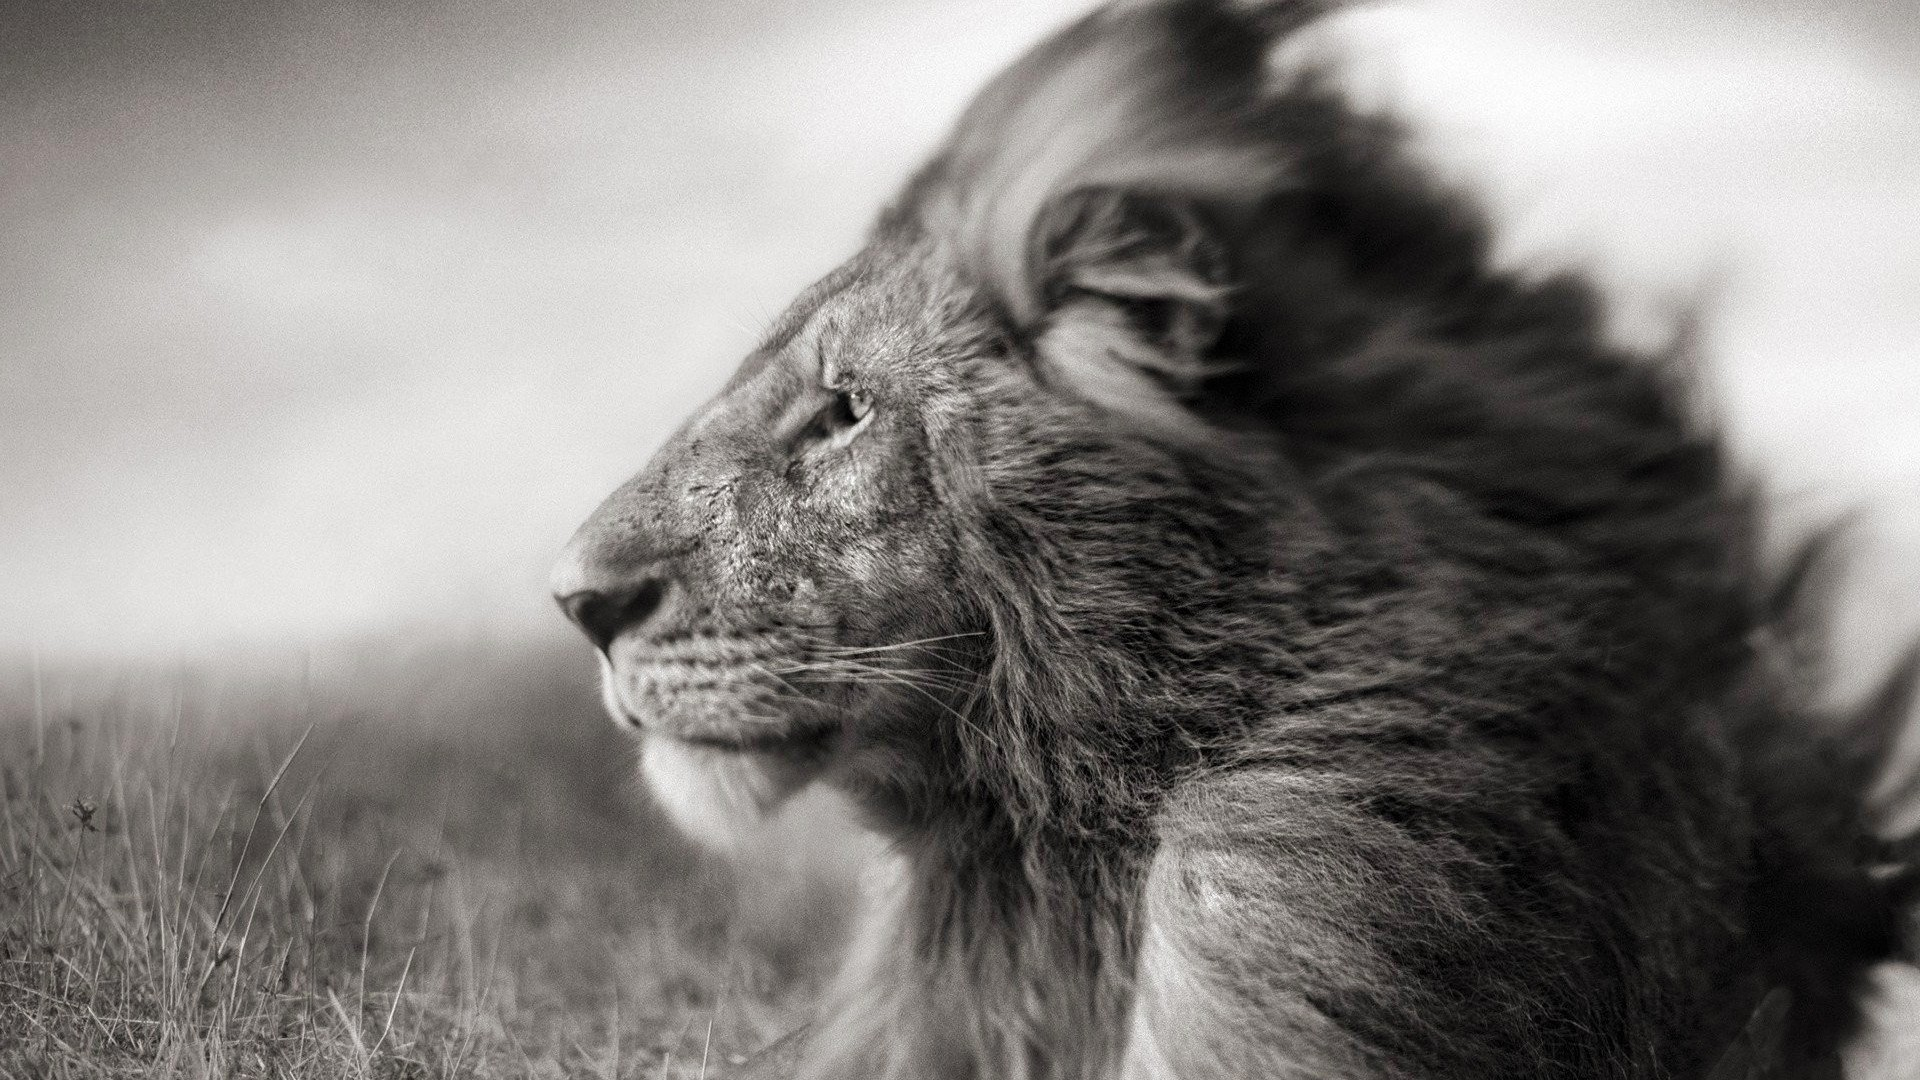 Portrait Of A Lion In Black And White Wallpaper for Desktop 1920x1080